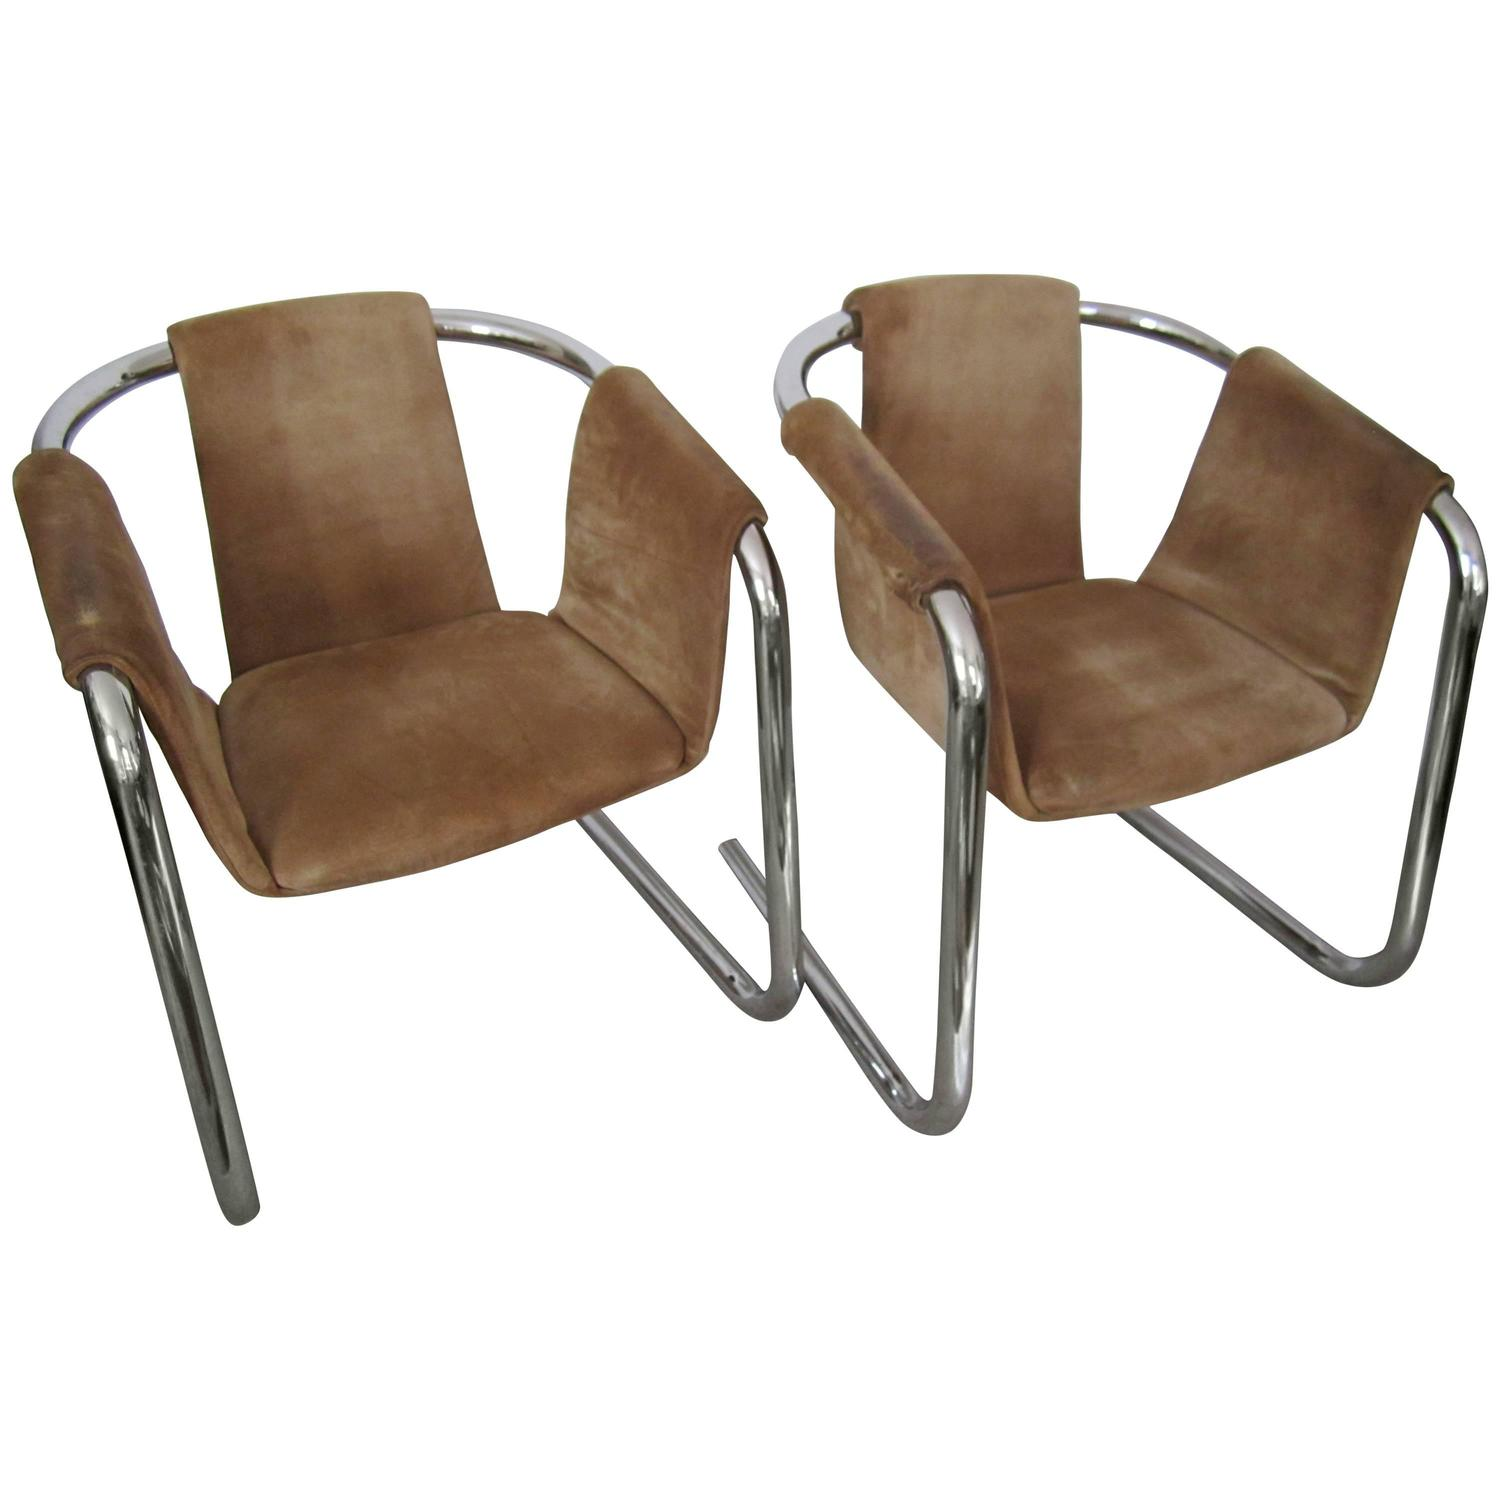 sling chairs for sale ergonomic chair home office vintage modern tubular chrome suede arm cantilever